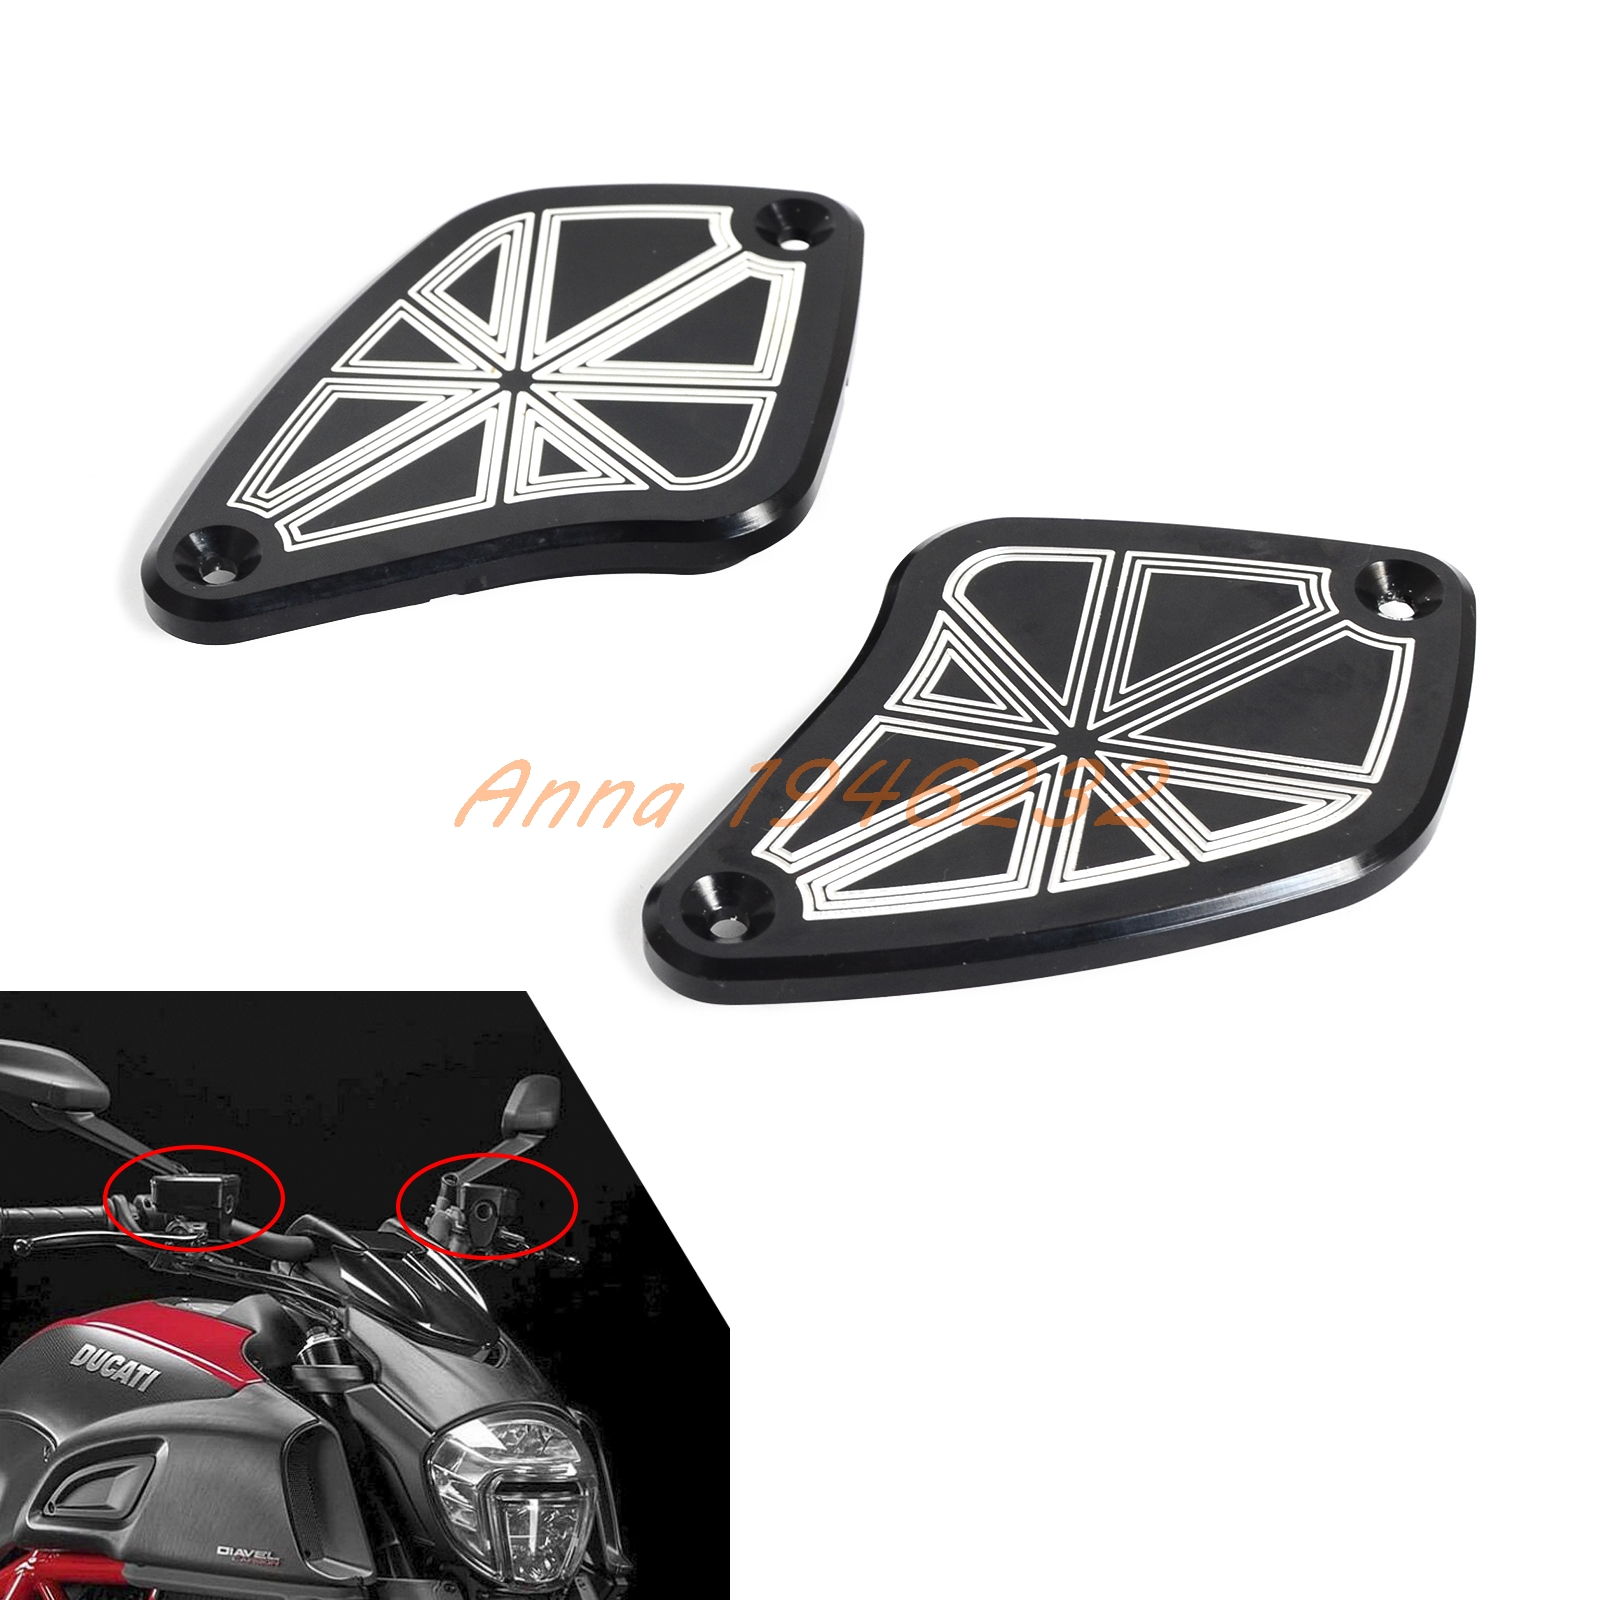 Motorcycle CNC Anodized Aluminum Brake Clutch Caps for Ducati Diavel 2011 2012 2013 2014 2015